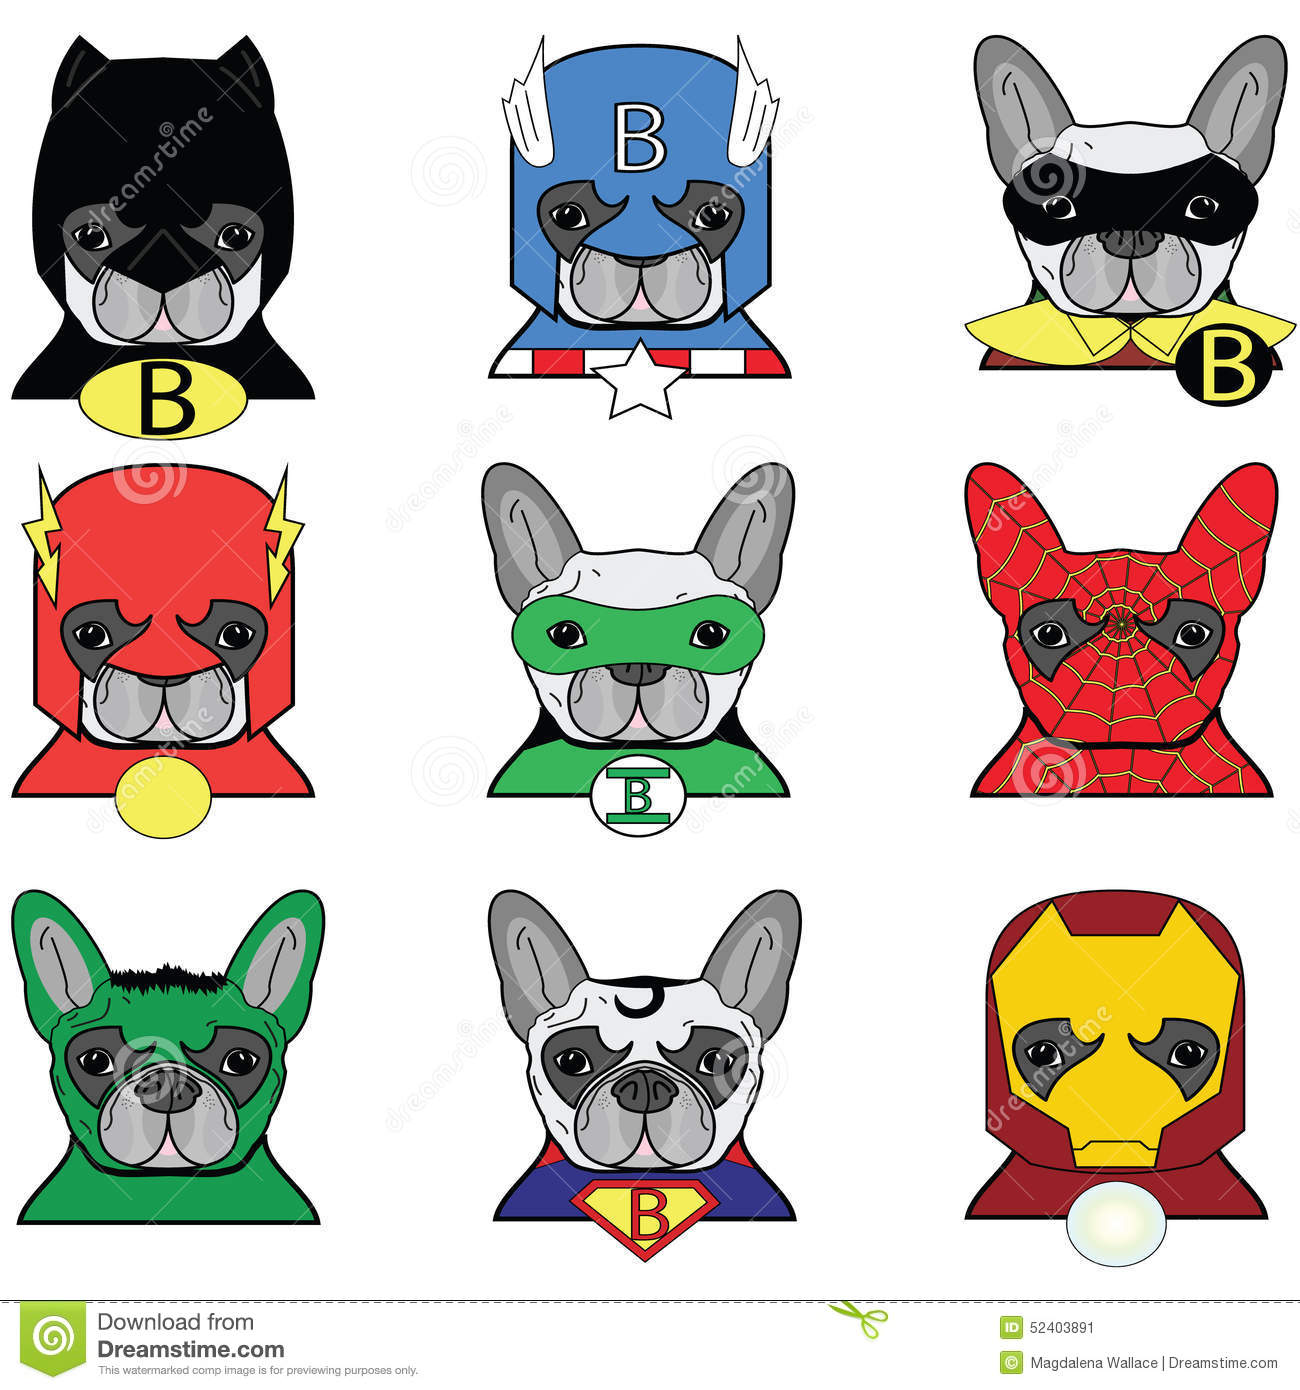 ... Ironman, Spiderman, Green Lantern, Captain America, Flash, Hulk icons